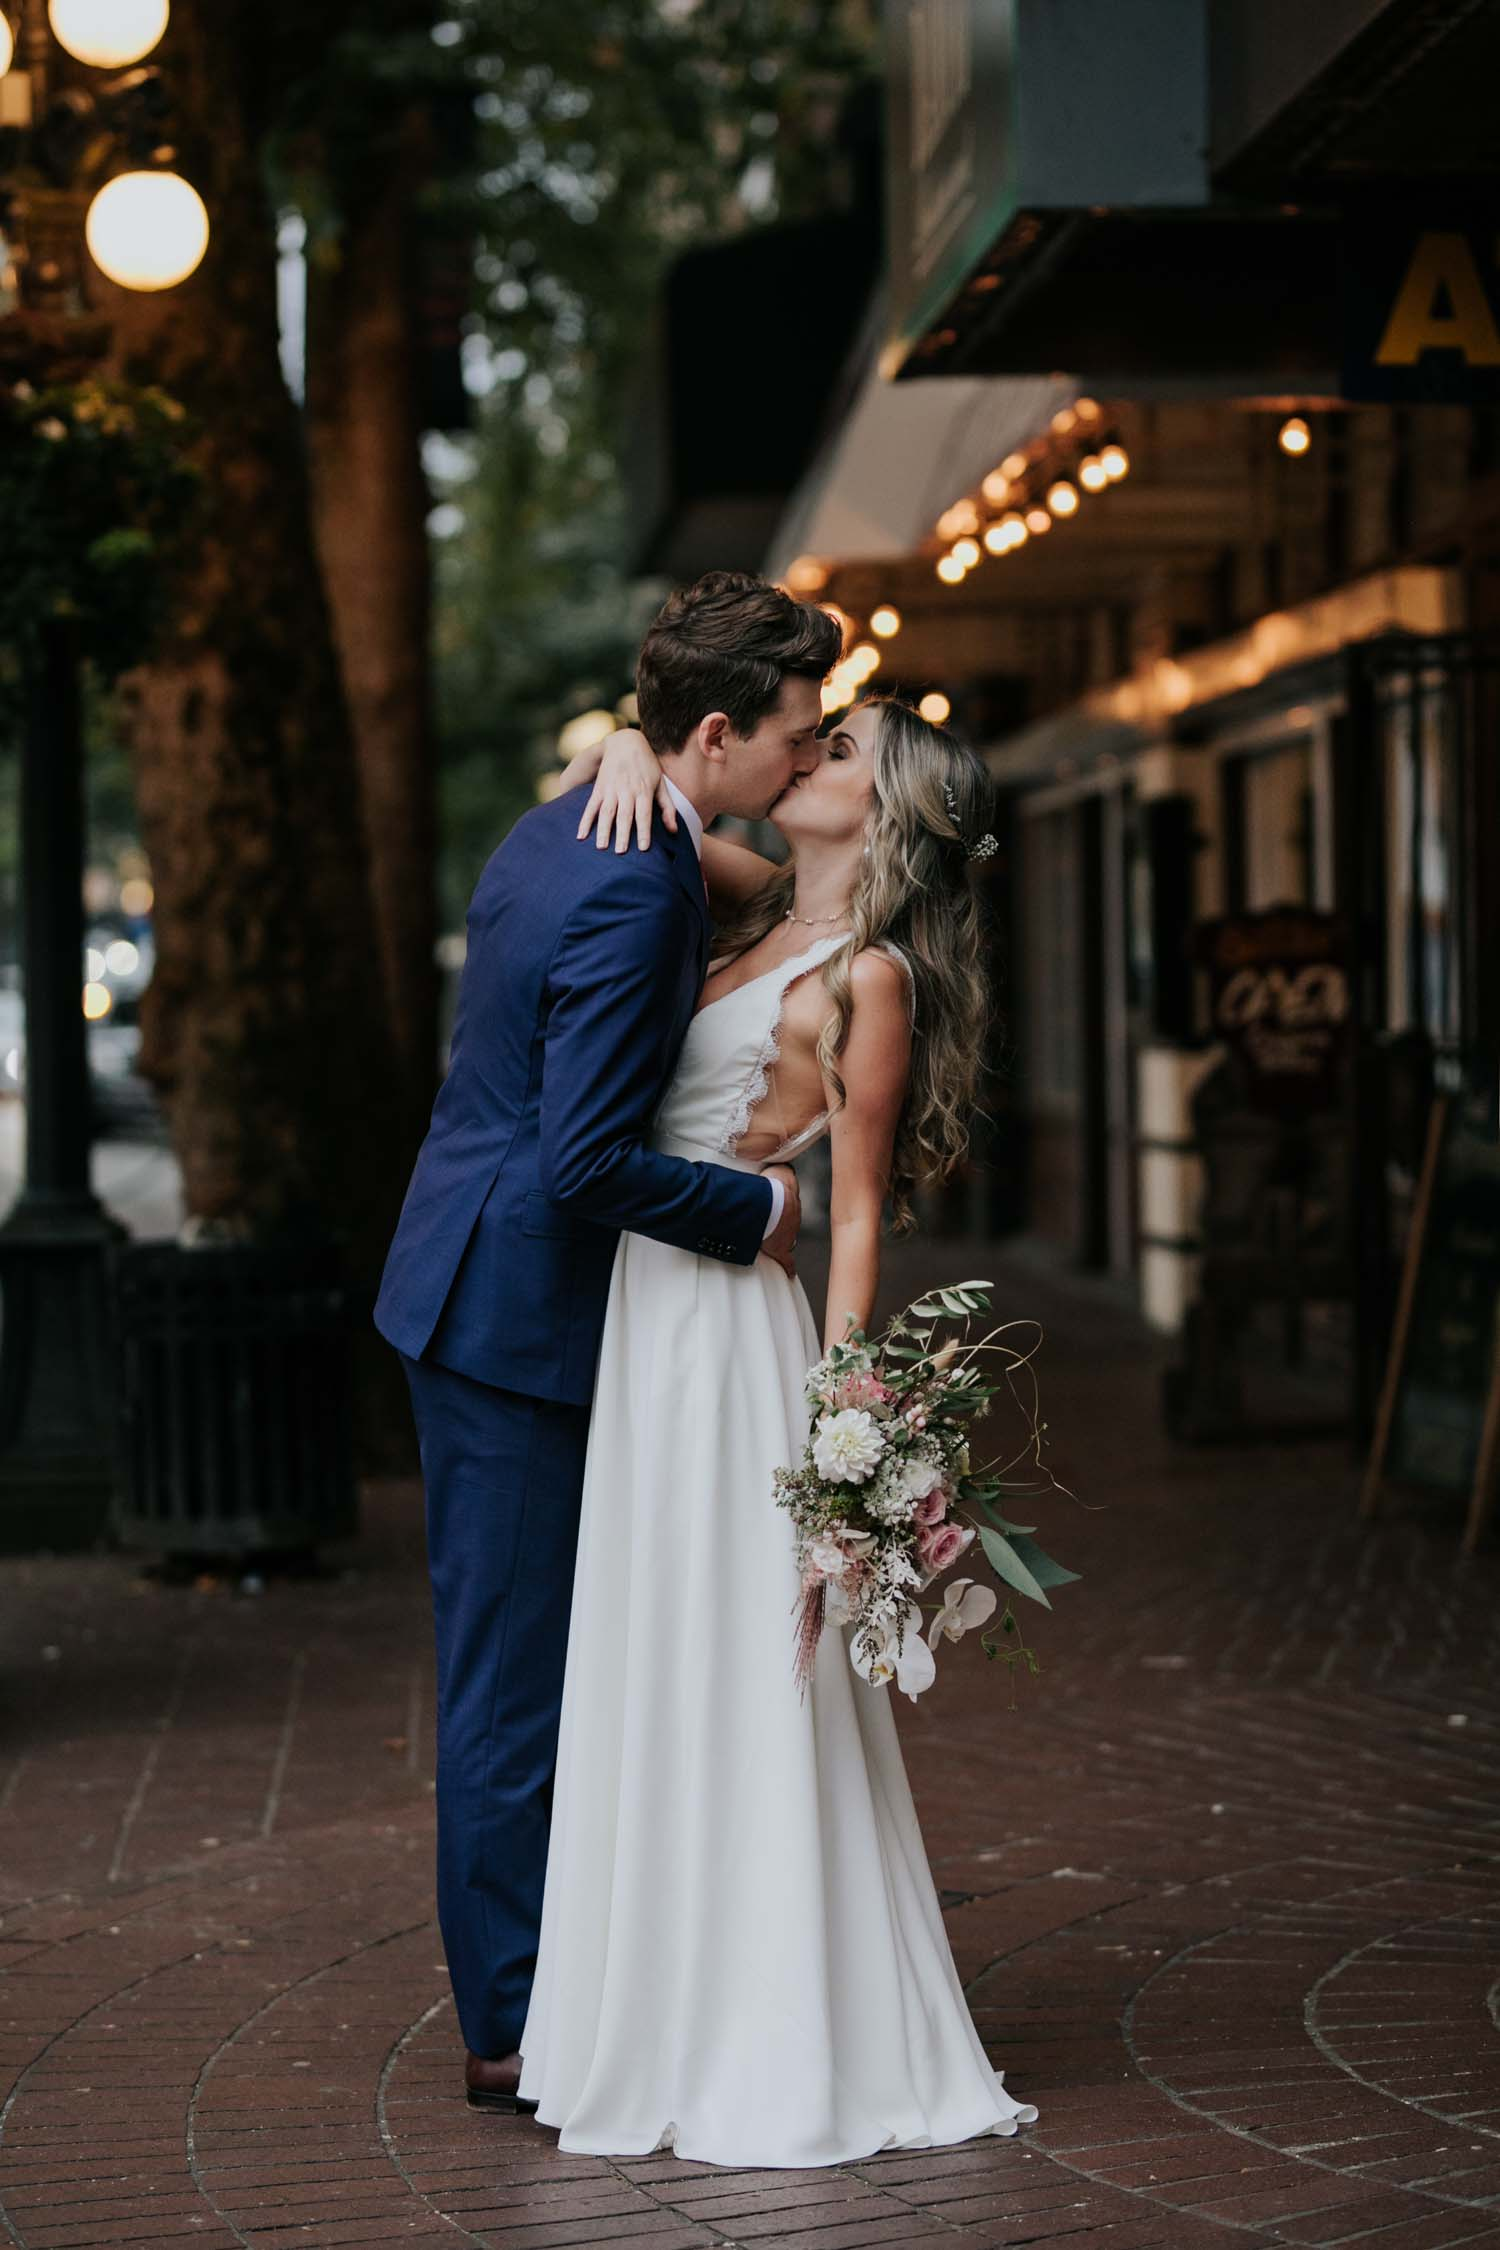 Wedding photos in Gastown Vancouver